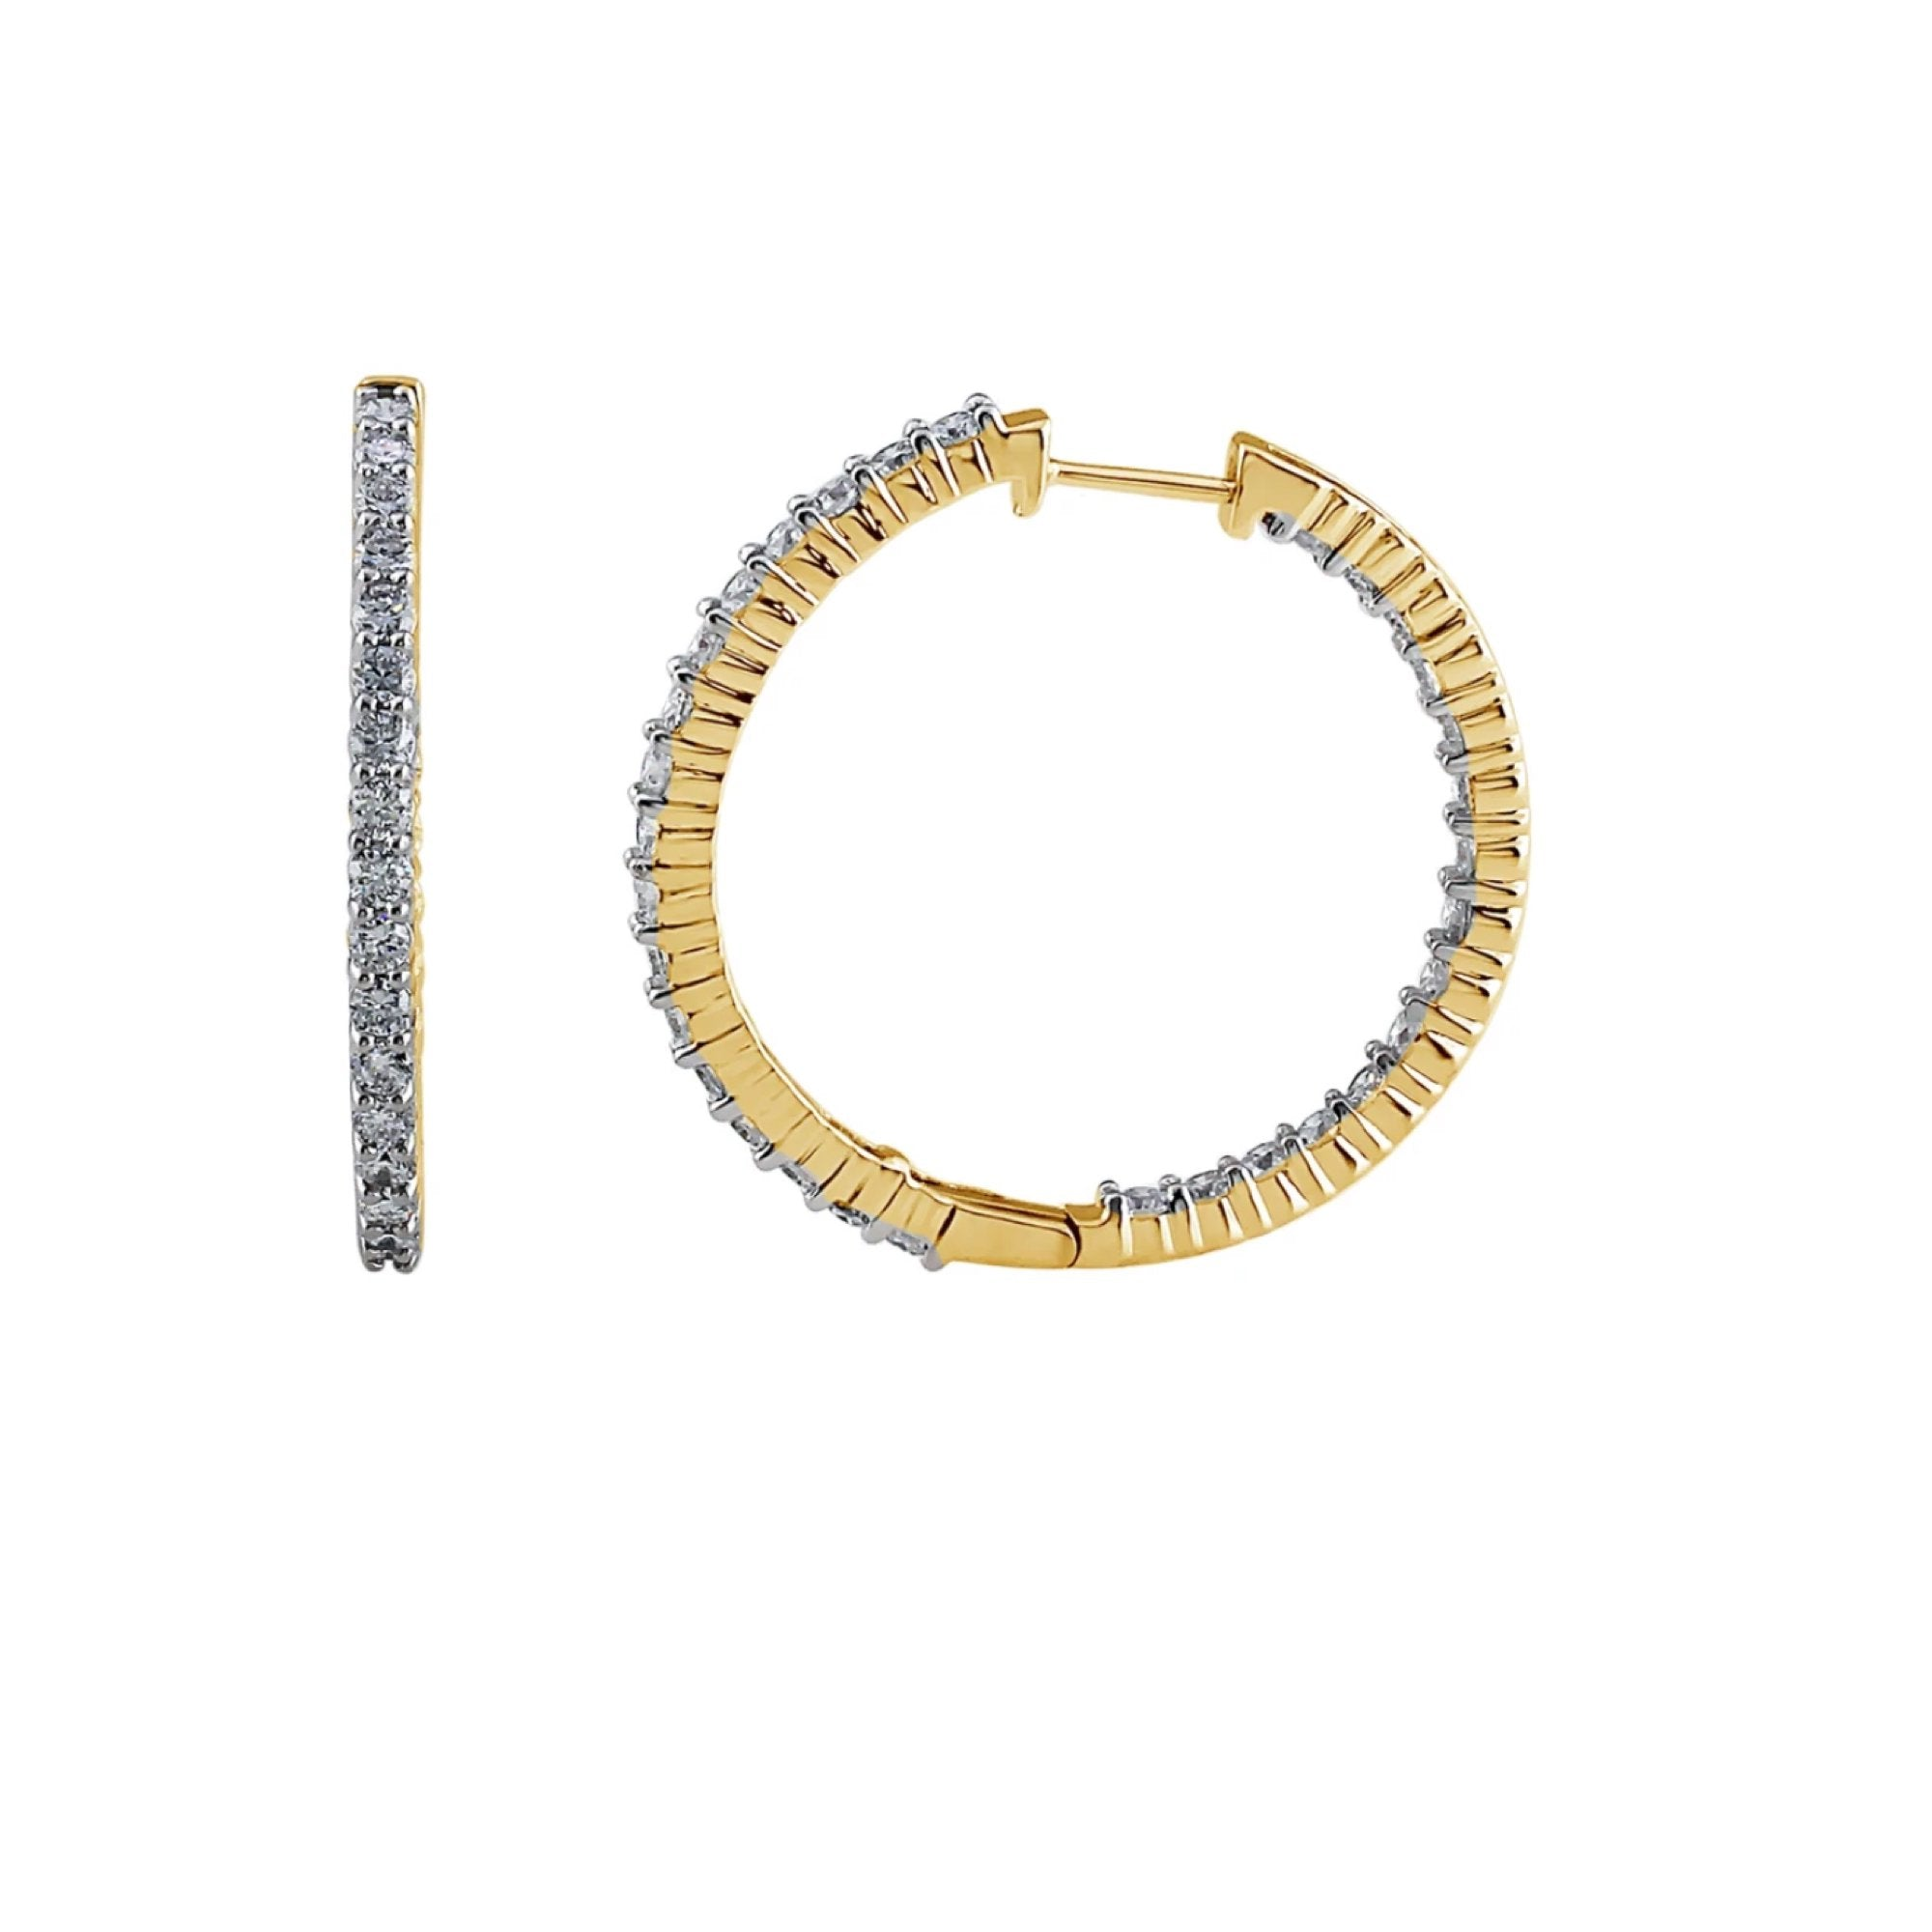 "3.00CTTW Lab Grown Diamond Inside Out Hoops in 14K Gold, 1.5"" Diameter"